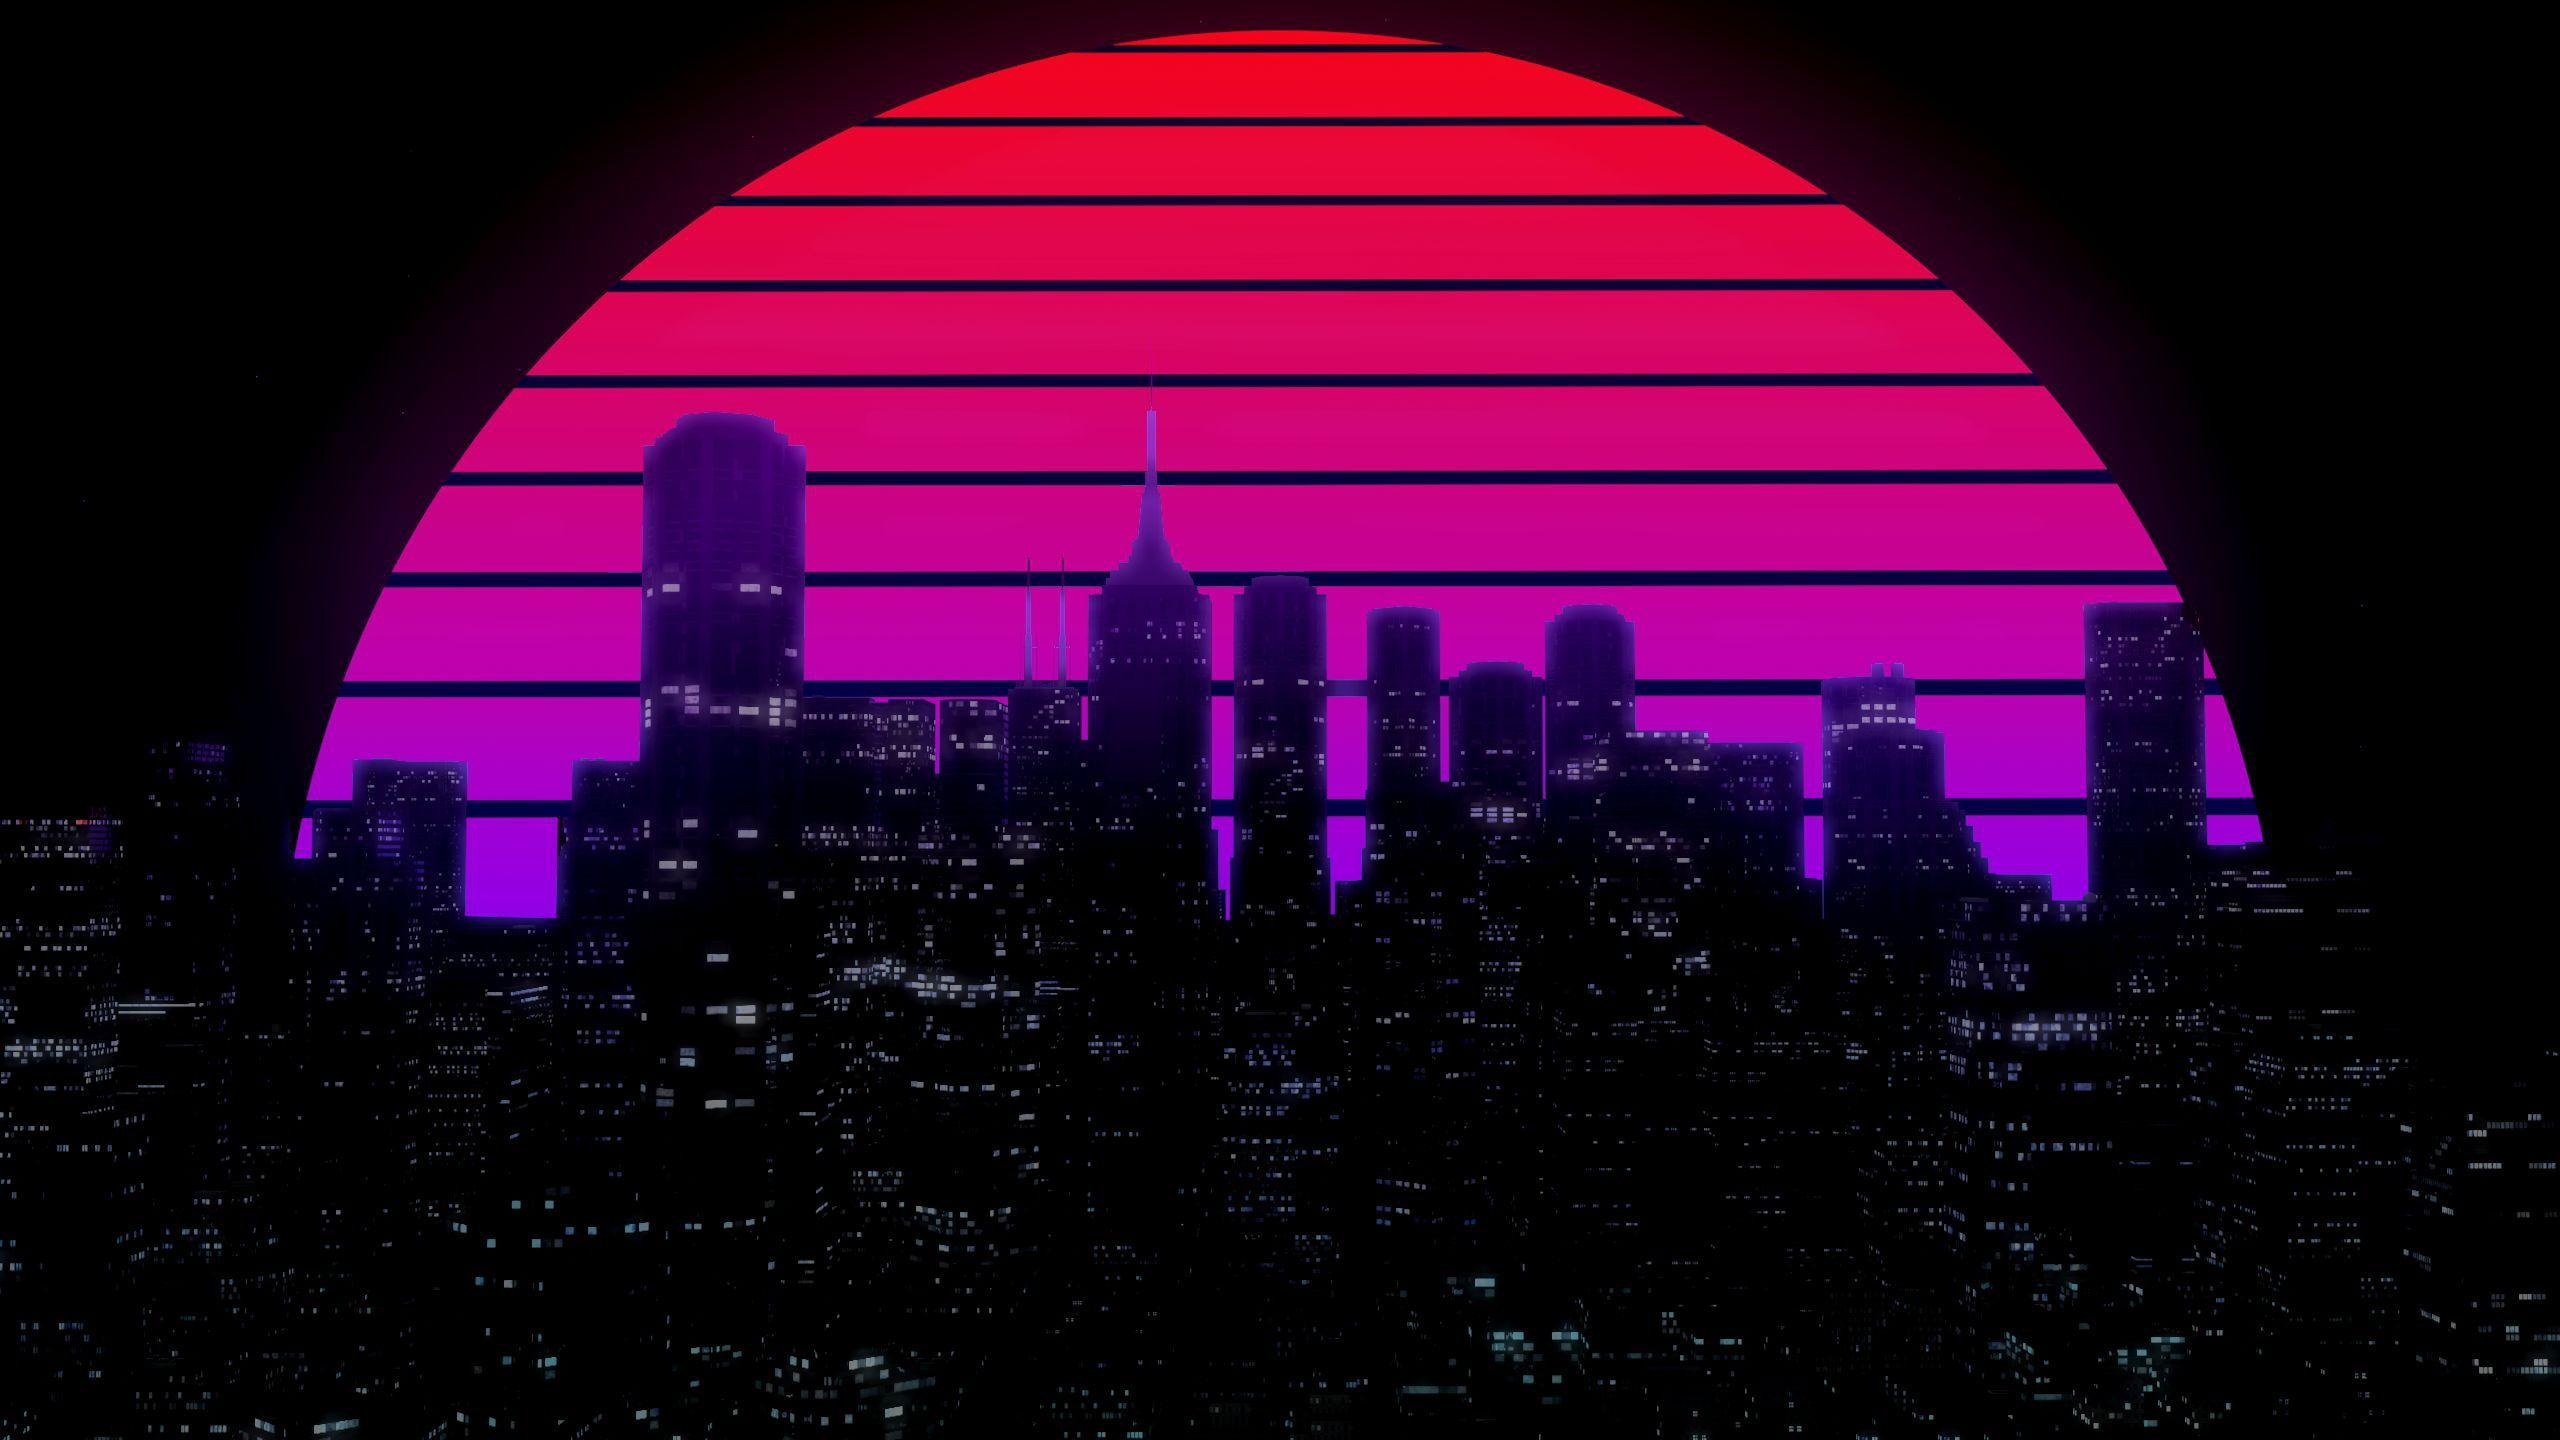 The Sun Night Music The City Star Building Background 80s Neon 80 S Synth Retrow In 2020 Aesthetic Desktop Wallpaper Cityscape Wallpaper Aesthetic Wallpapers